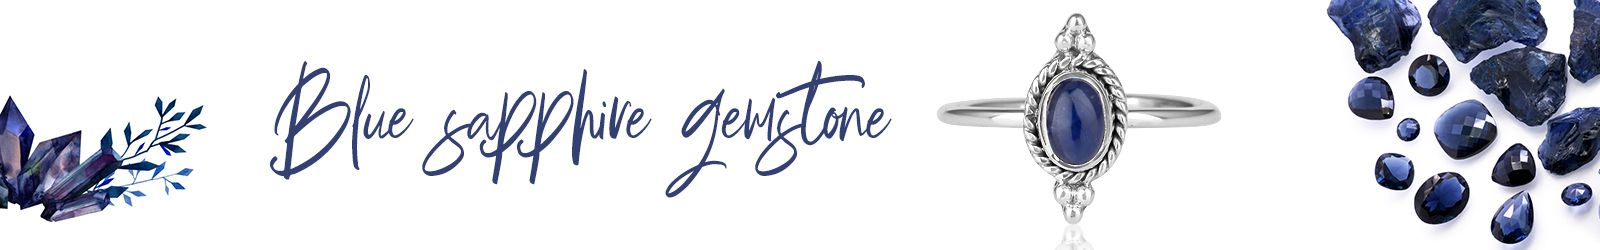 Wholesale Natural Blue Sapphire Jewelry Manufacture, Supplier in Jaipur